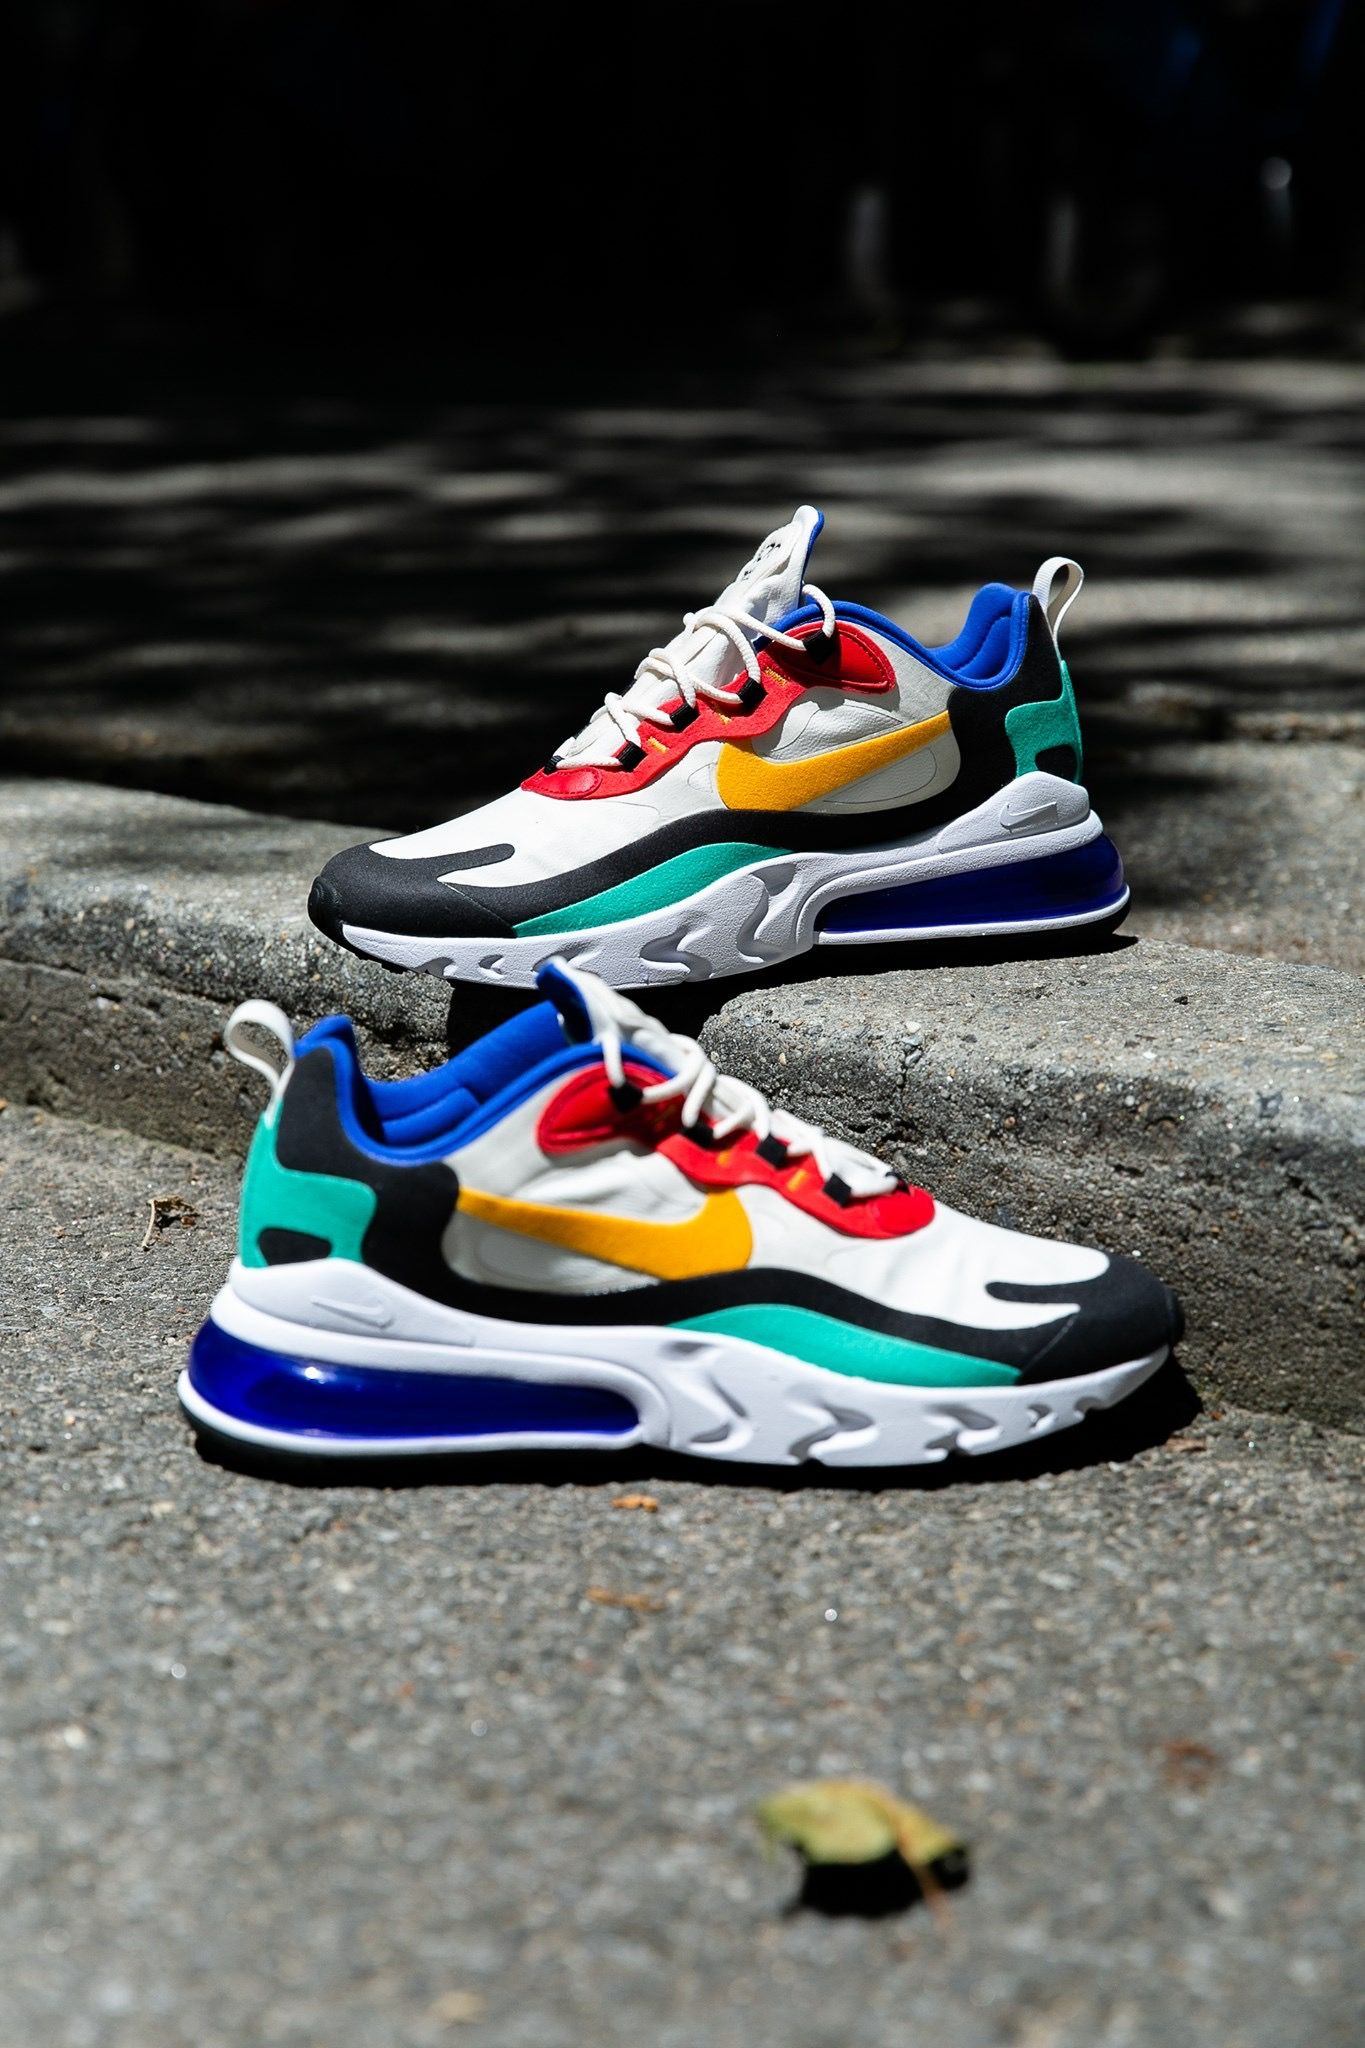 Nike Air Max 270 React (With images) | Nike air max, Nike ...